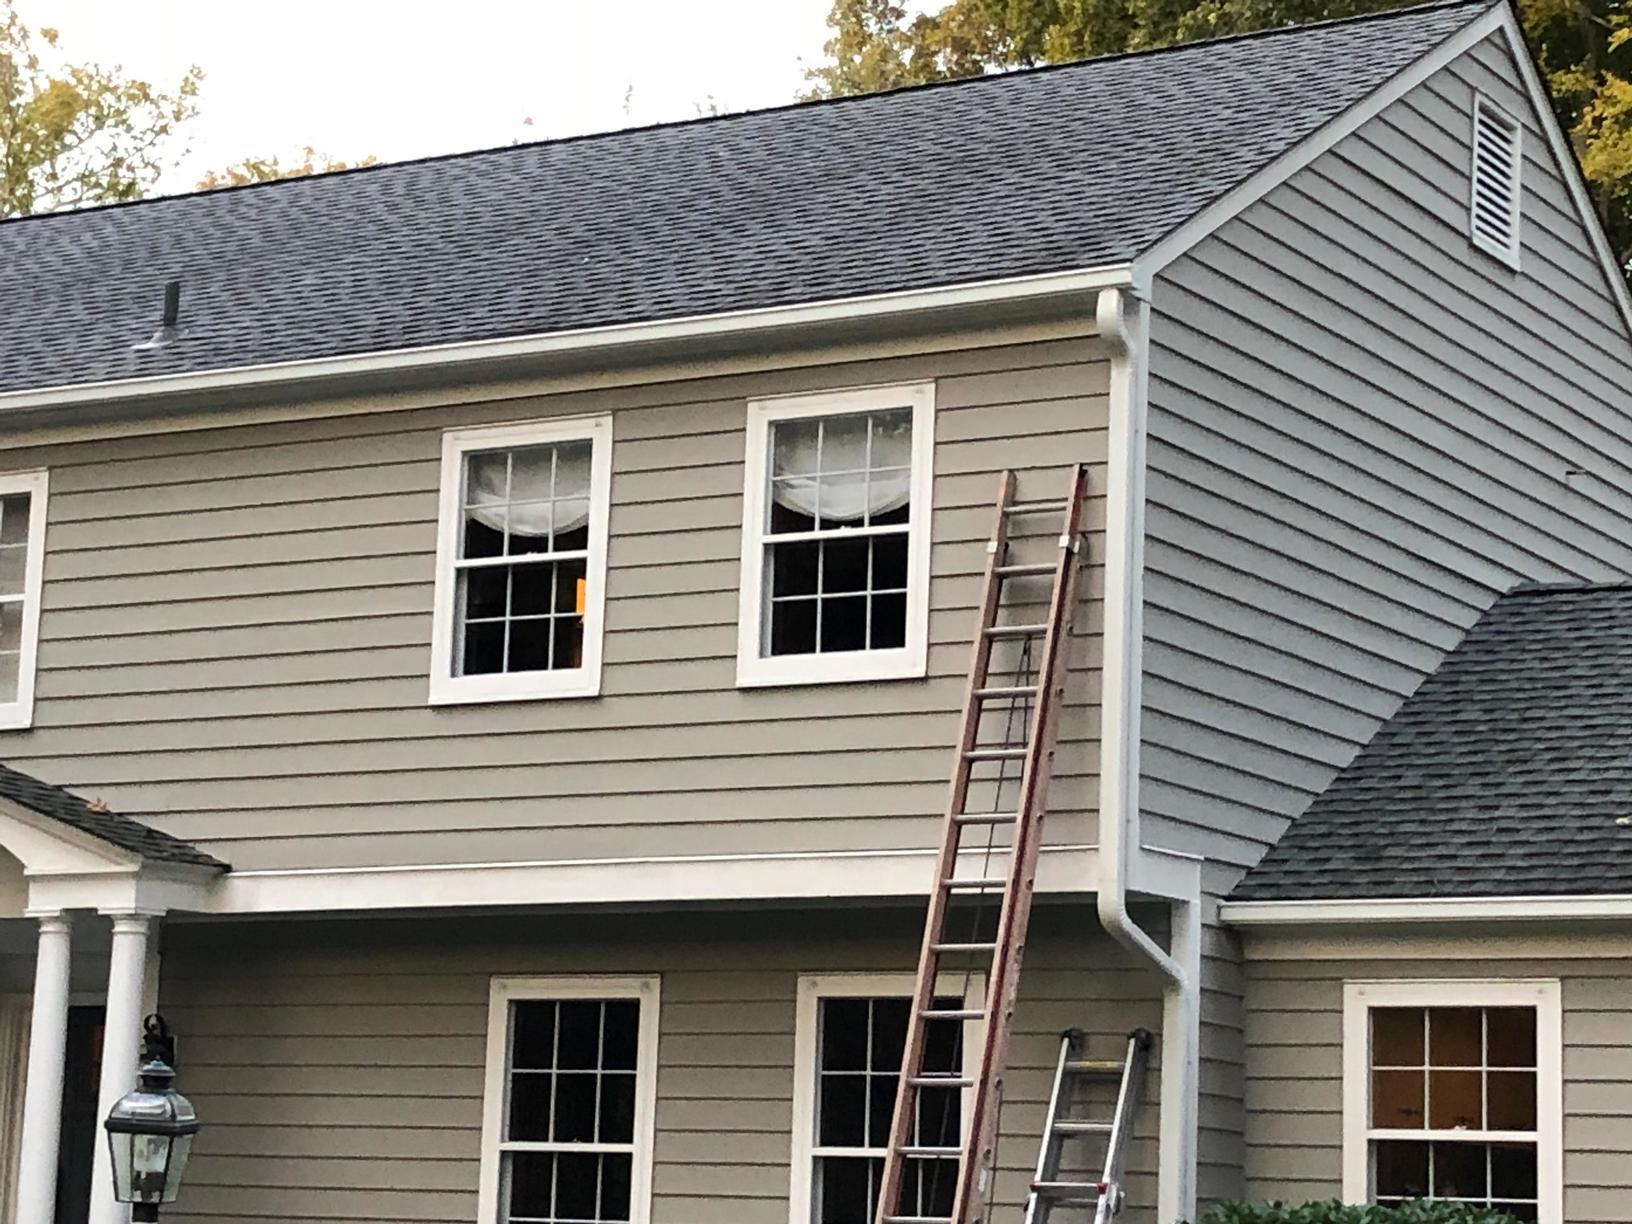 Gutter System - New Canaan, CT - After Photo